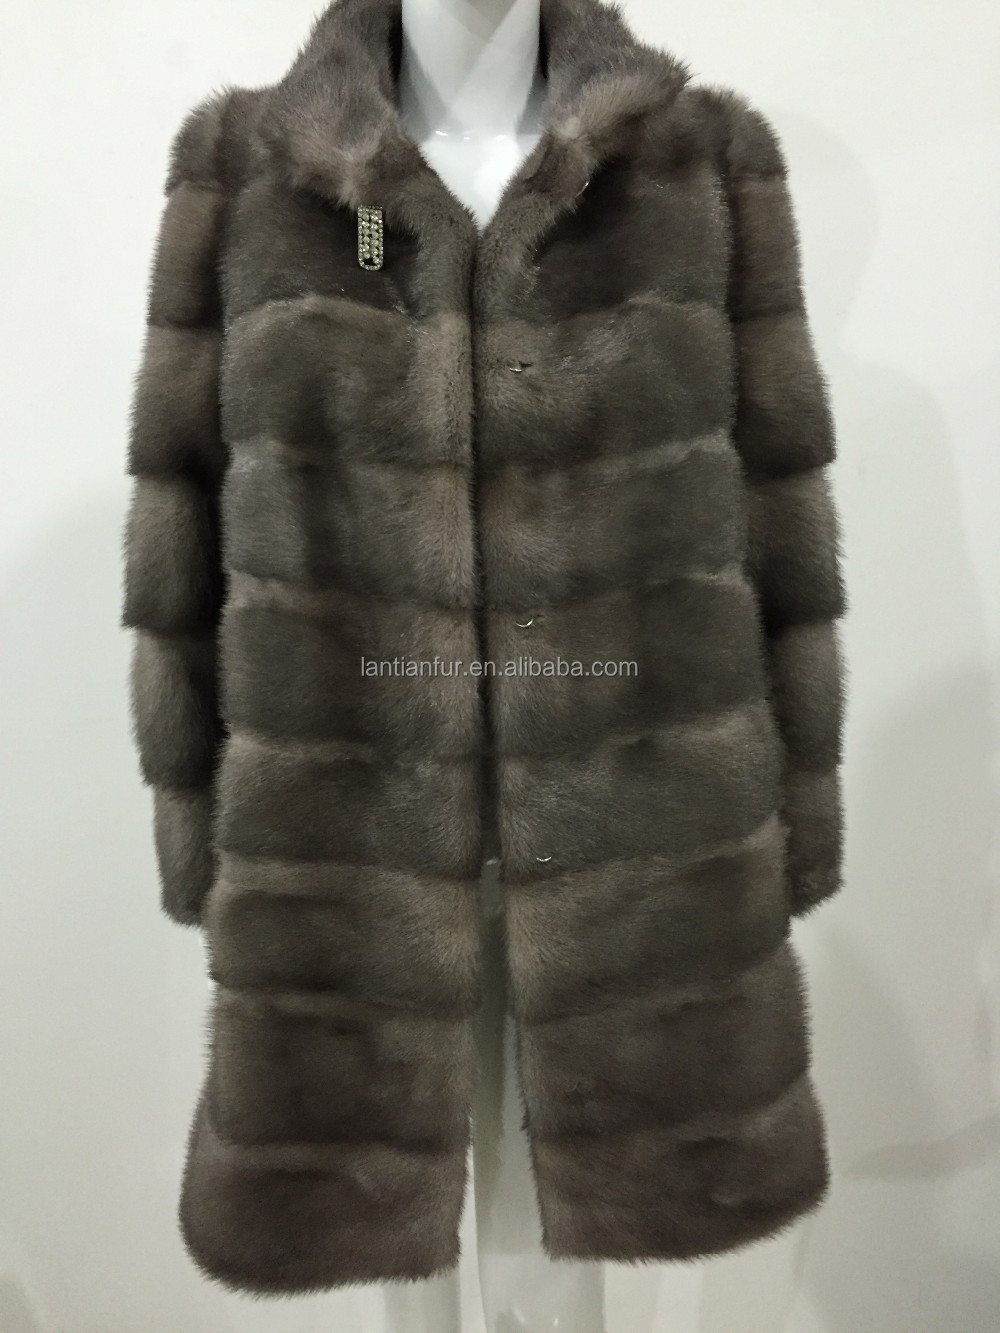 New Arrival fur coats for woman wear cheap fur winter coats mink fur coats